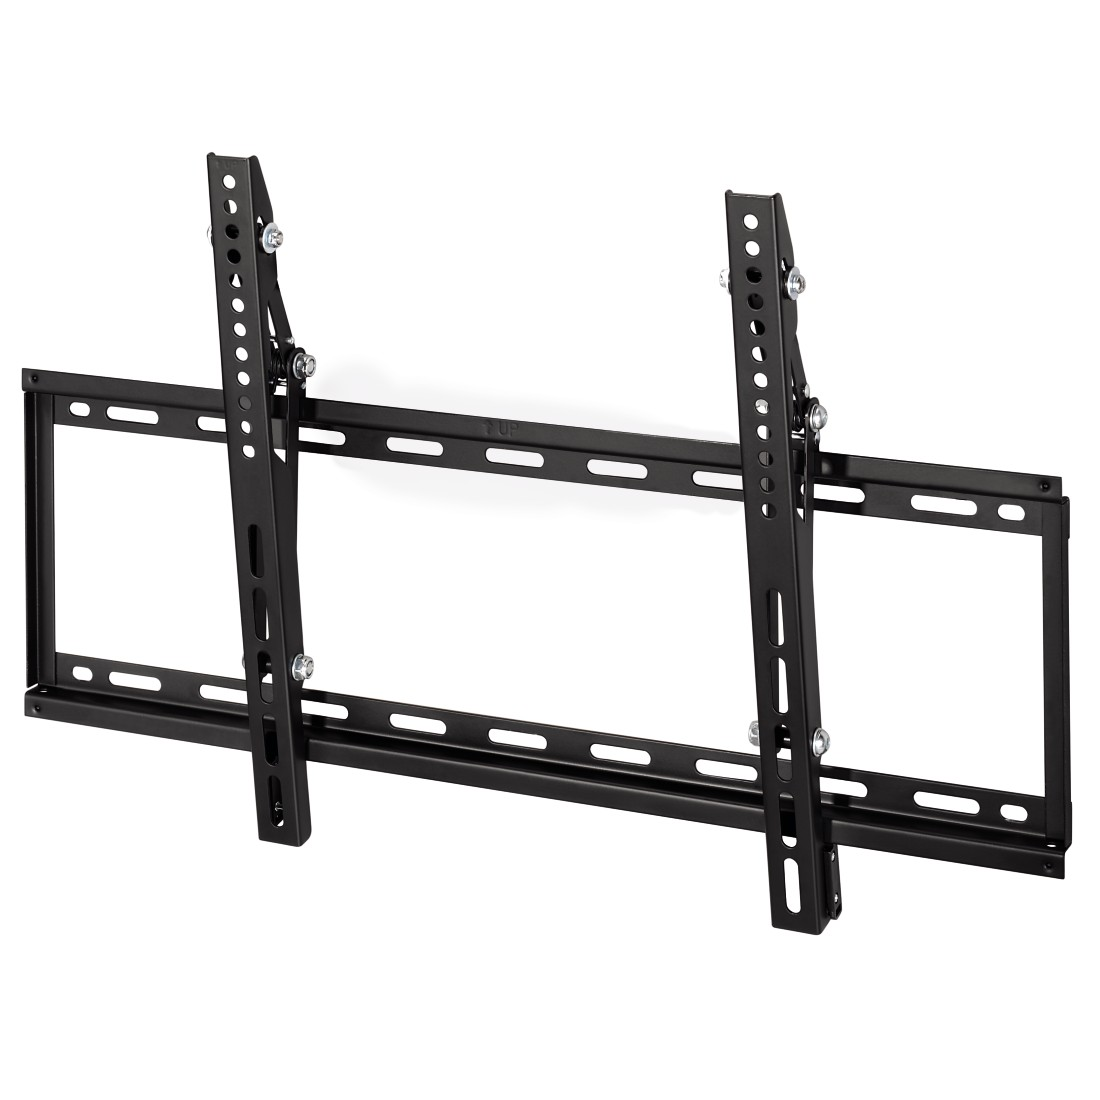 abx2 High-Res Image 2 - Hama, MOTION TV Wall Bracket, 1 star, XL, 142 cm (56), black